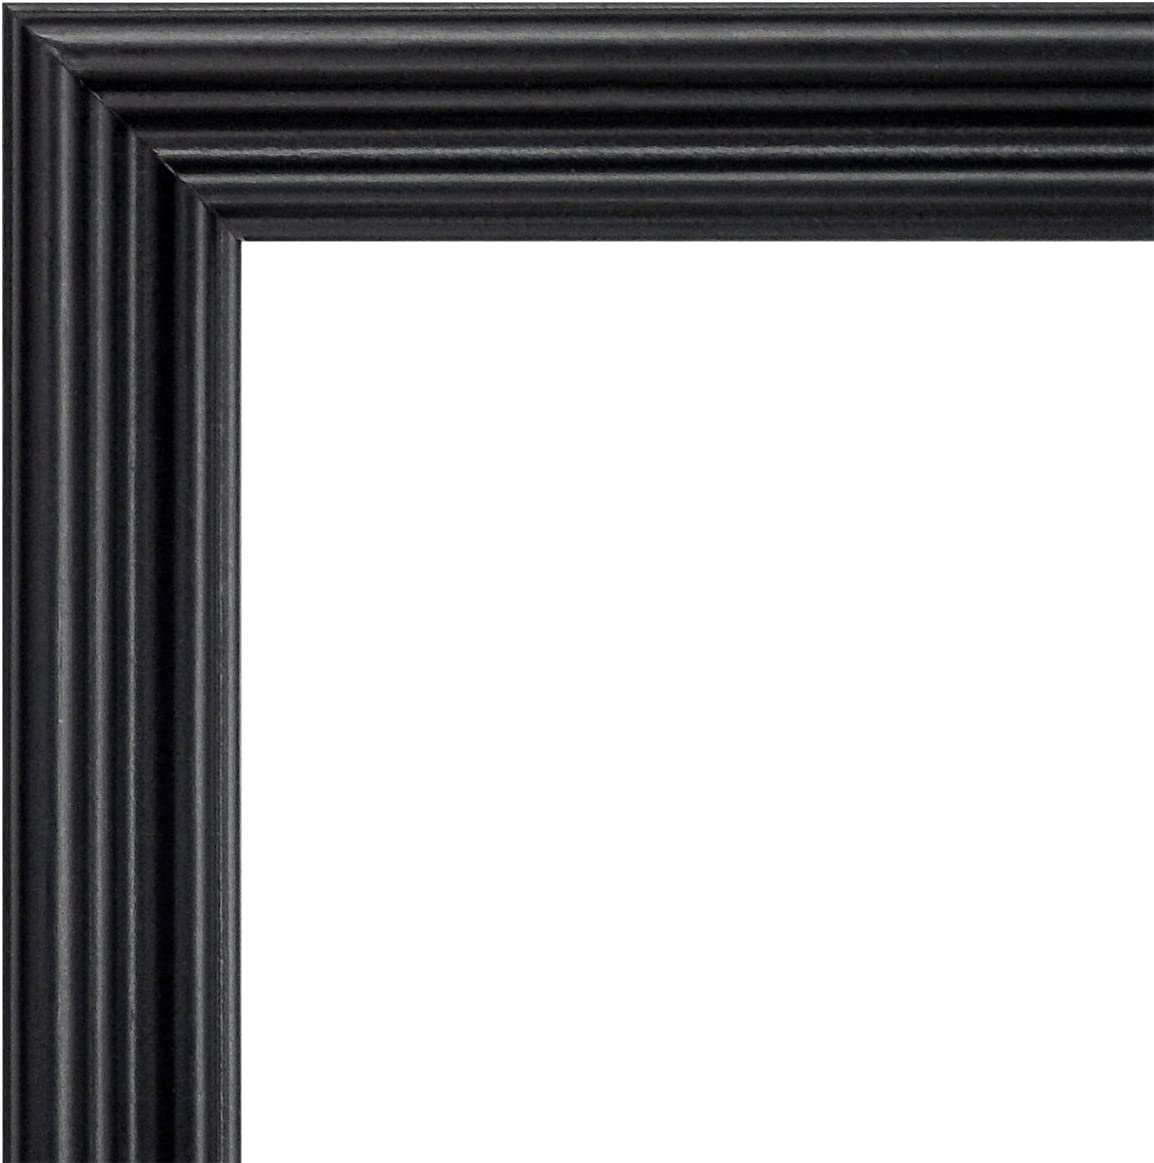 MCS 14x18 Solid Wood Value Picture Frame Black Overstock Special